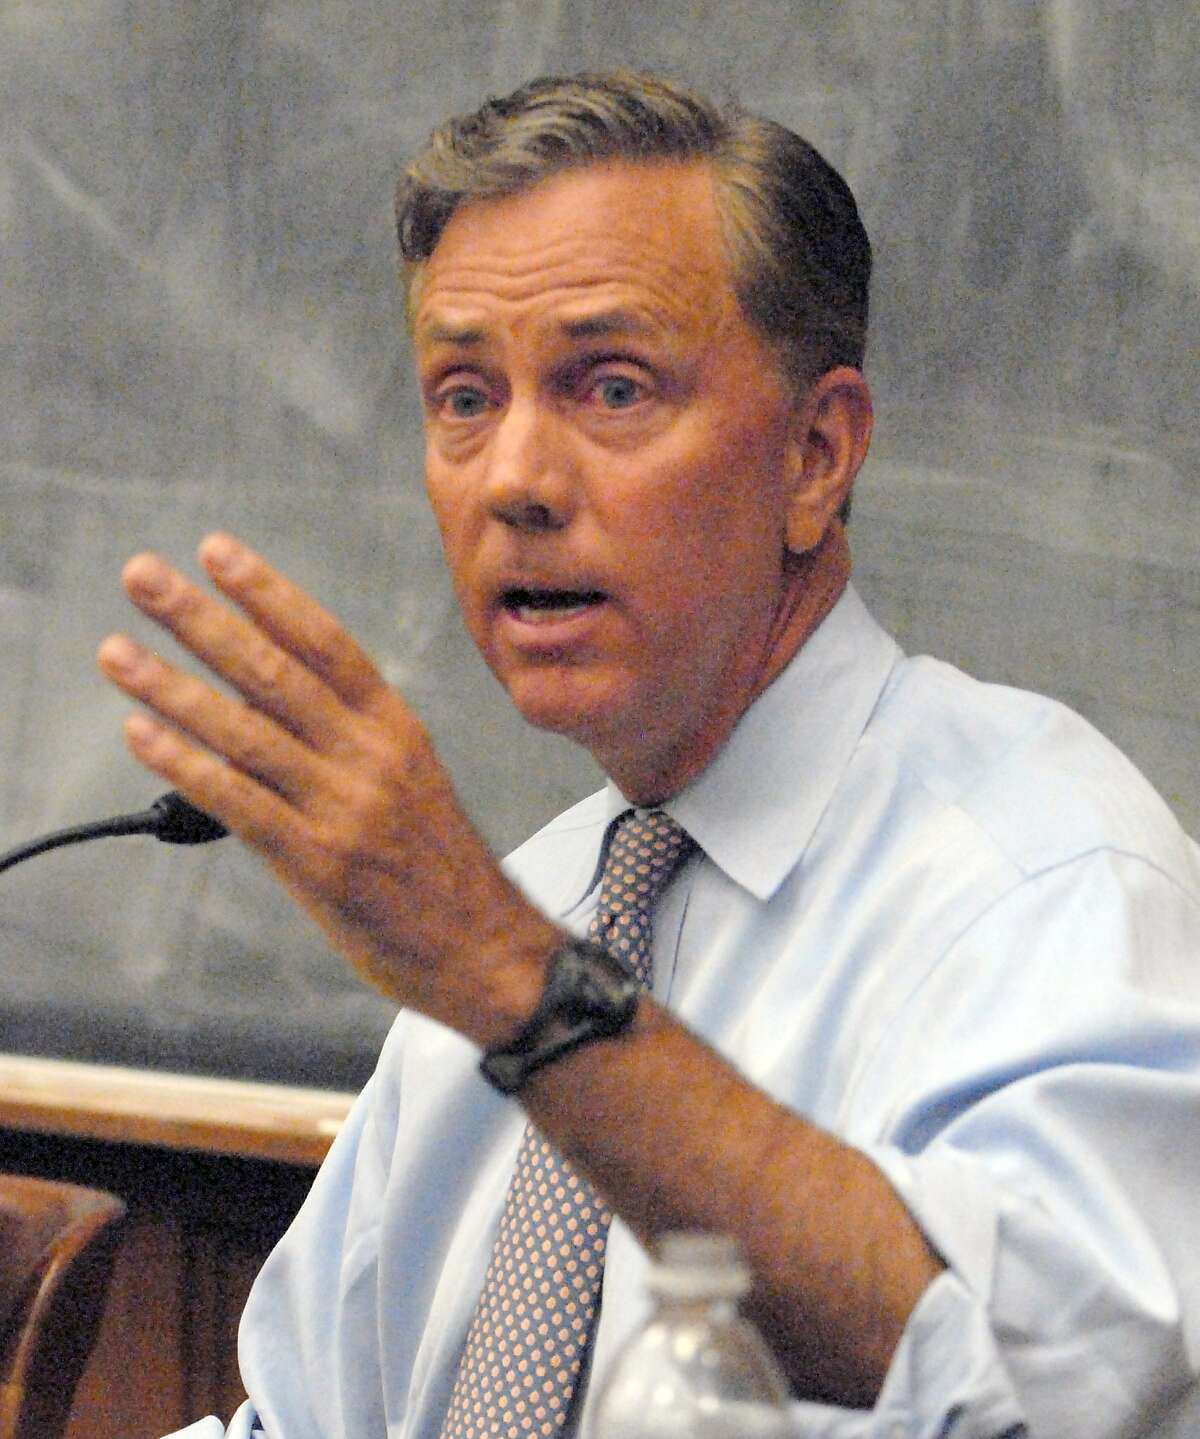 Democrats including Gov. Ned Lamont are preparing to replace most of the state income tax with a payroll tax, a new scheme to raise cash for the state that would mark the most radical change in Connecticut finances since the income tax started 28 years ago.